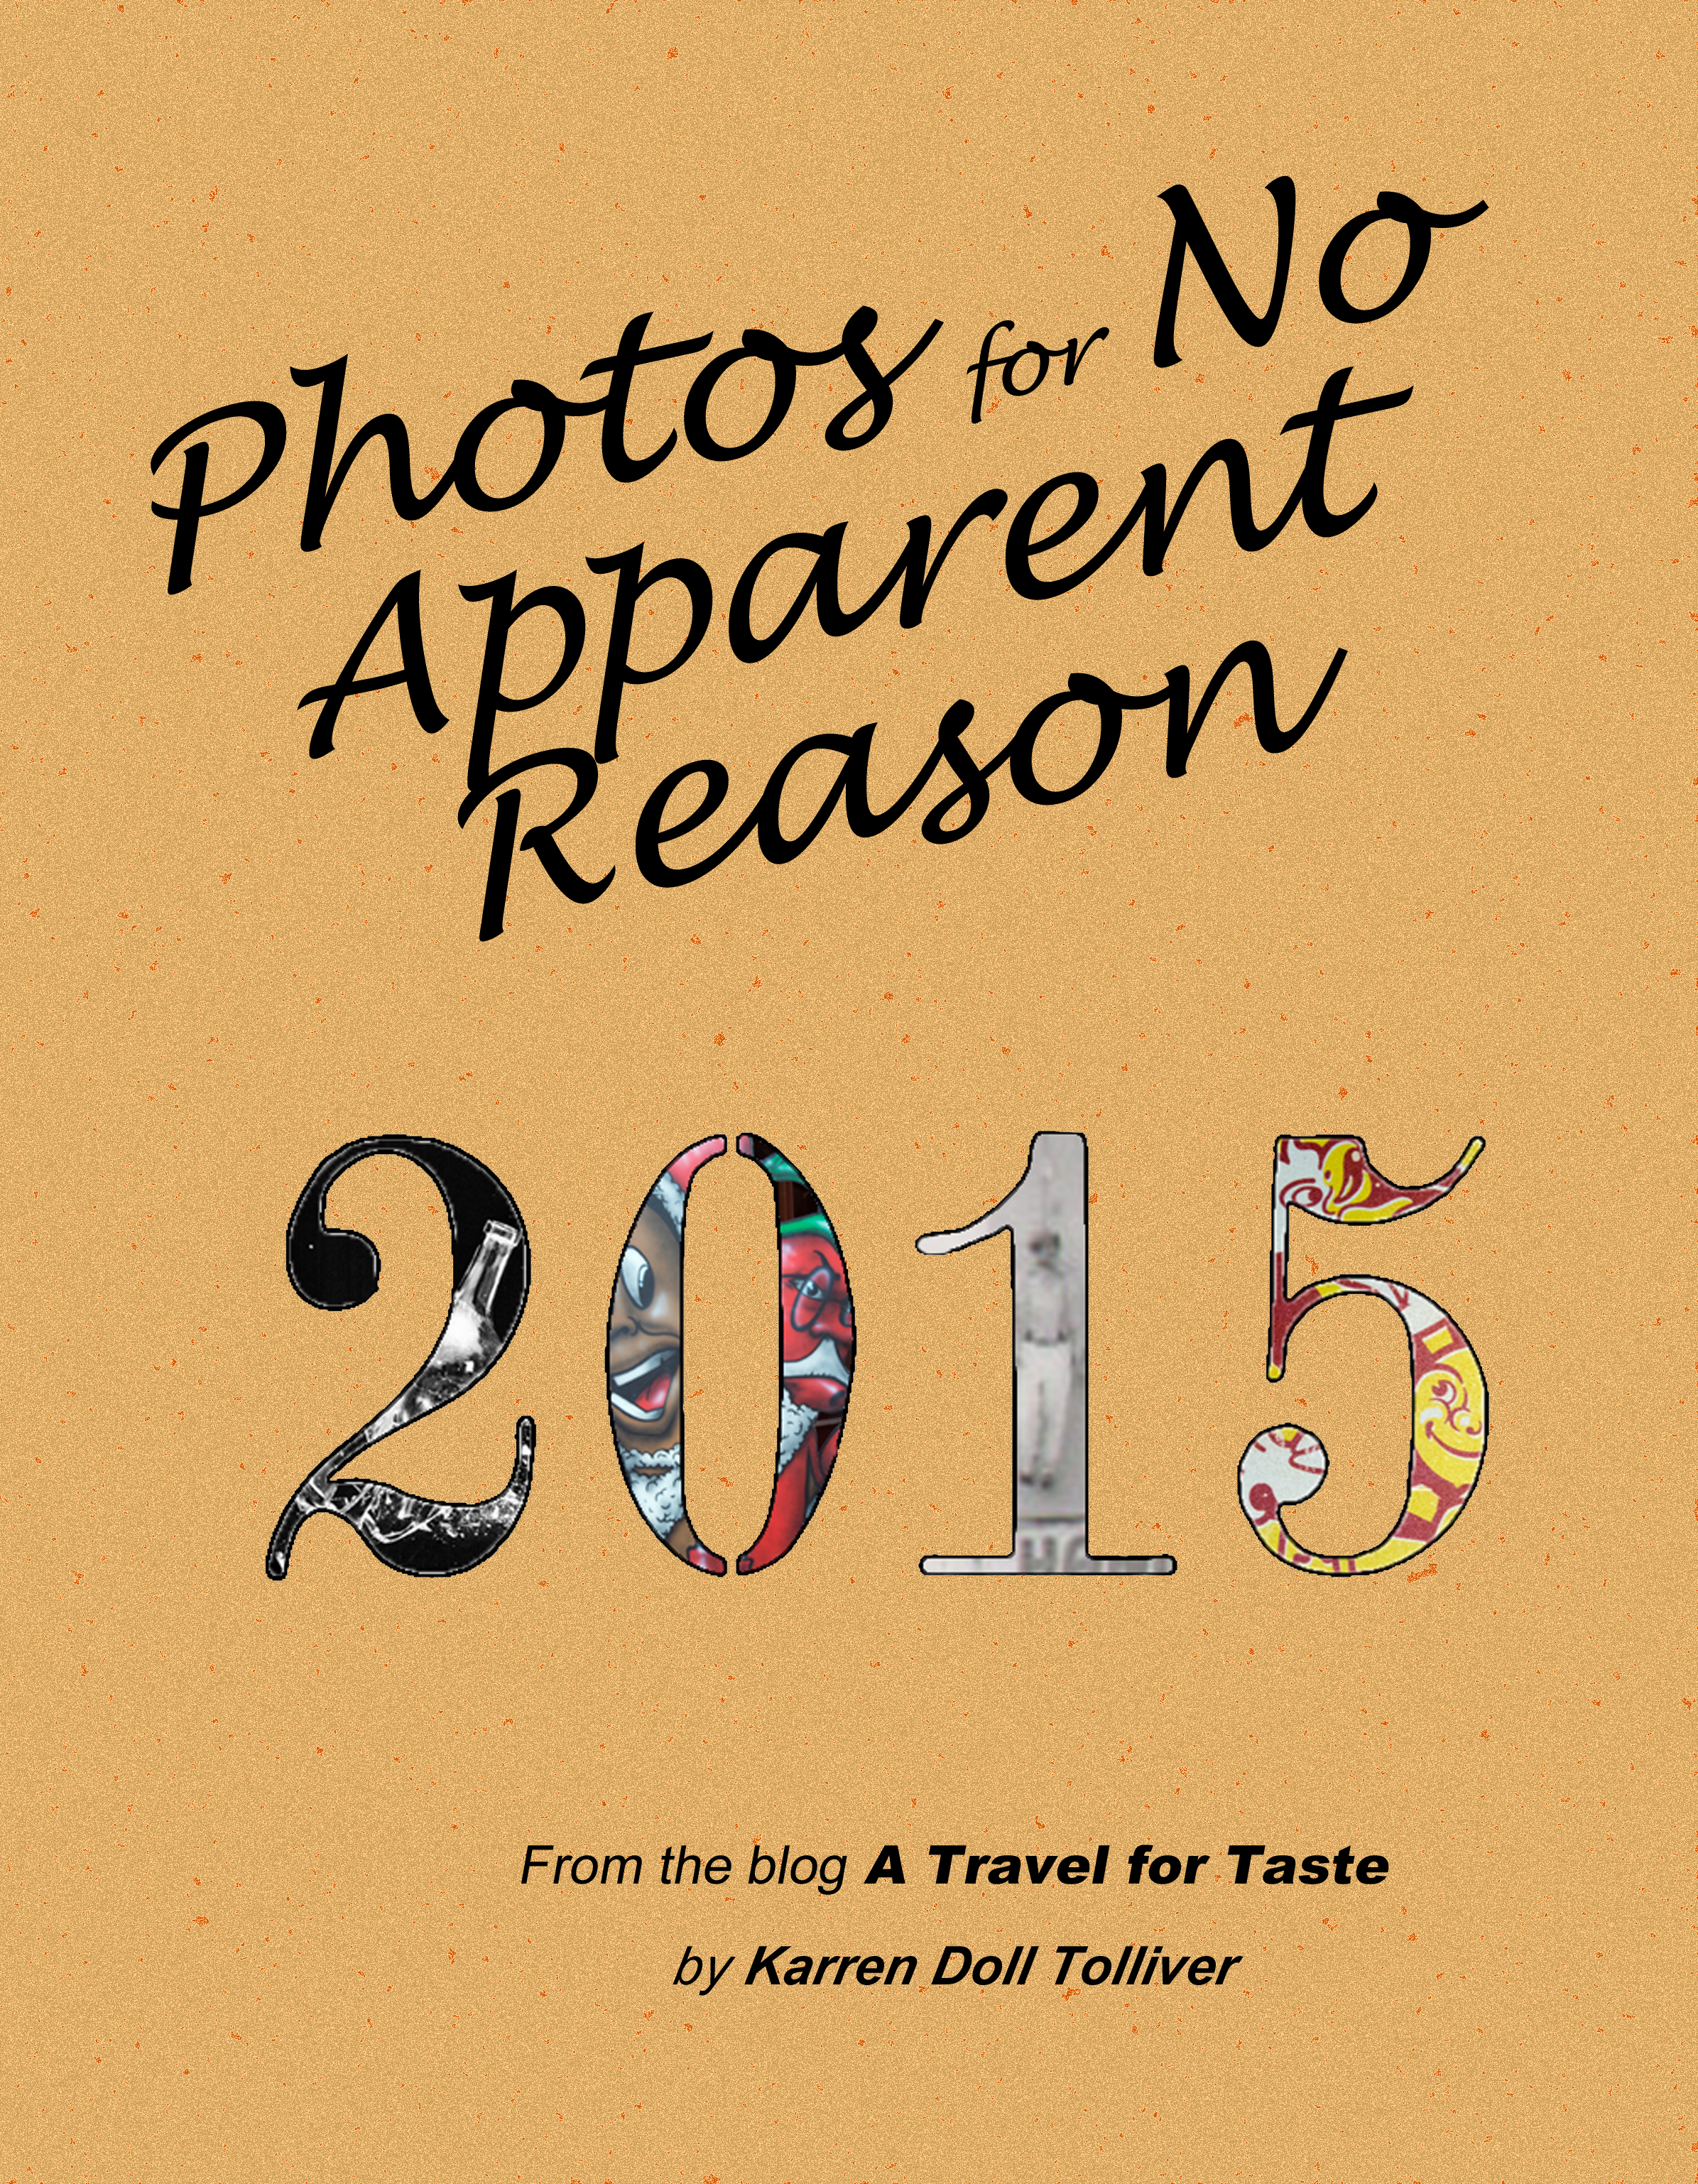 NEW BOOK: Photos for No Apparent Reason (PFNAR) 2015!